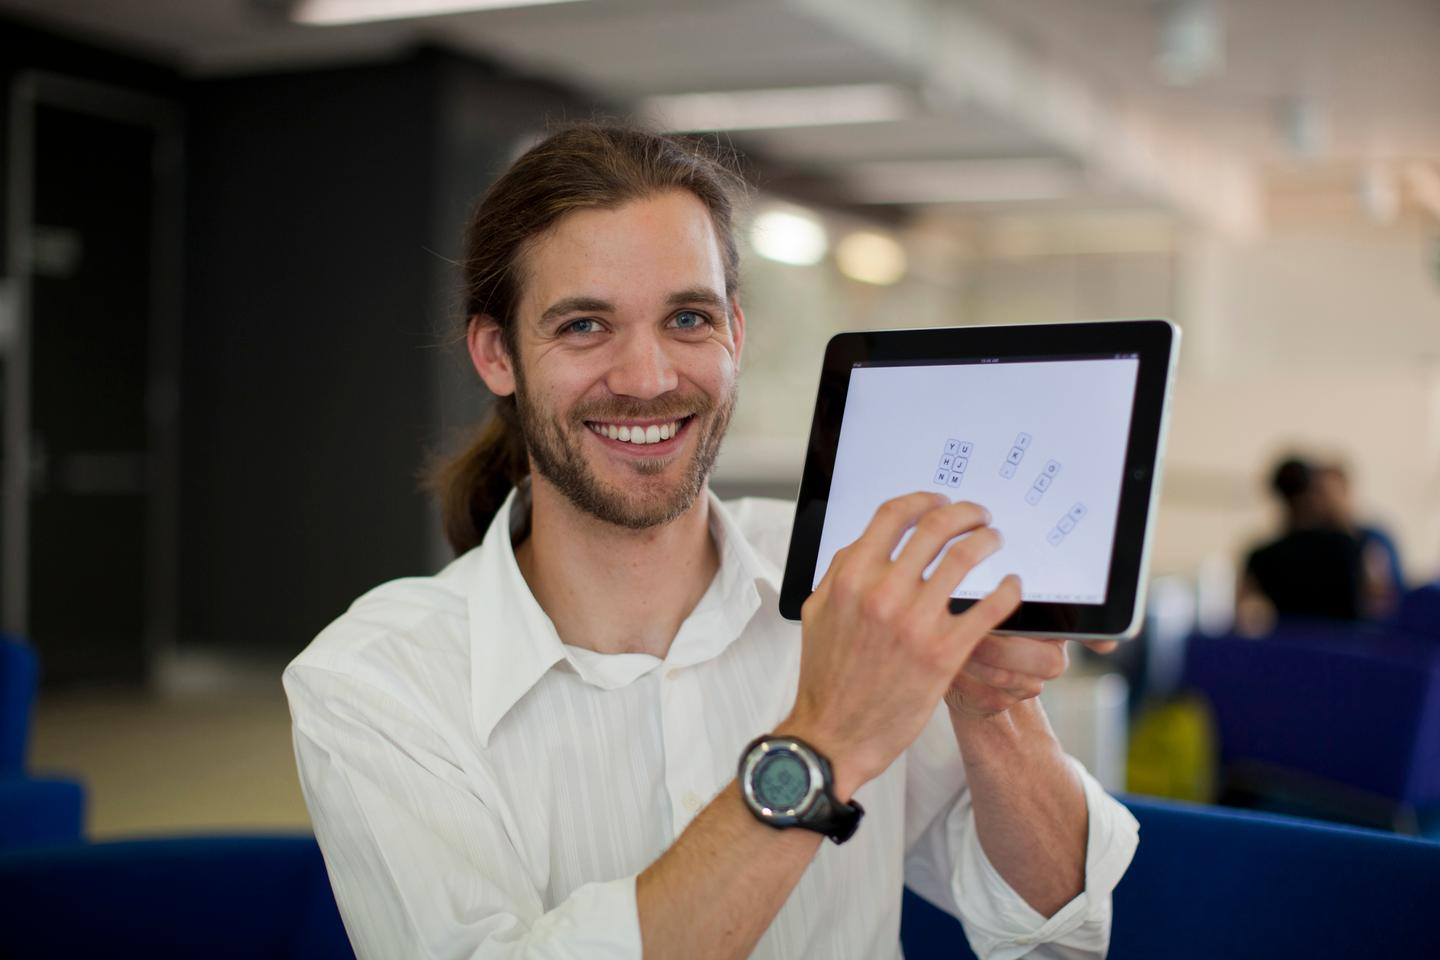 Researchers from the University of Technology, Sydney have developed tablet software that's said to enable touch-typists to tap away without having to look at the screen